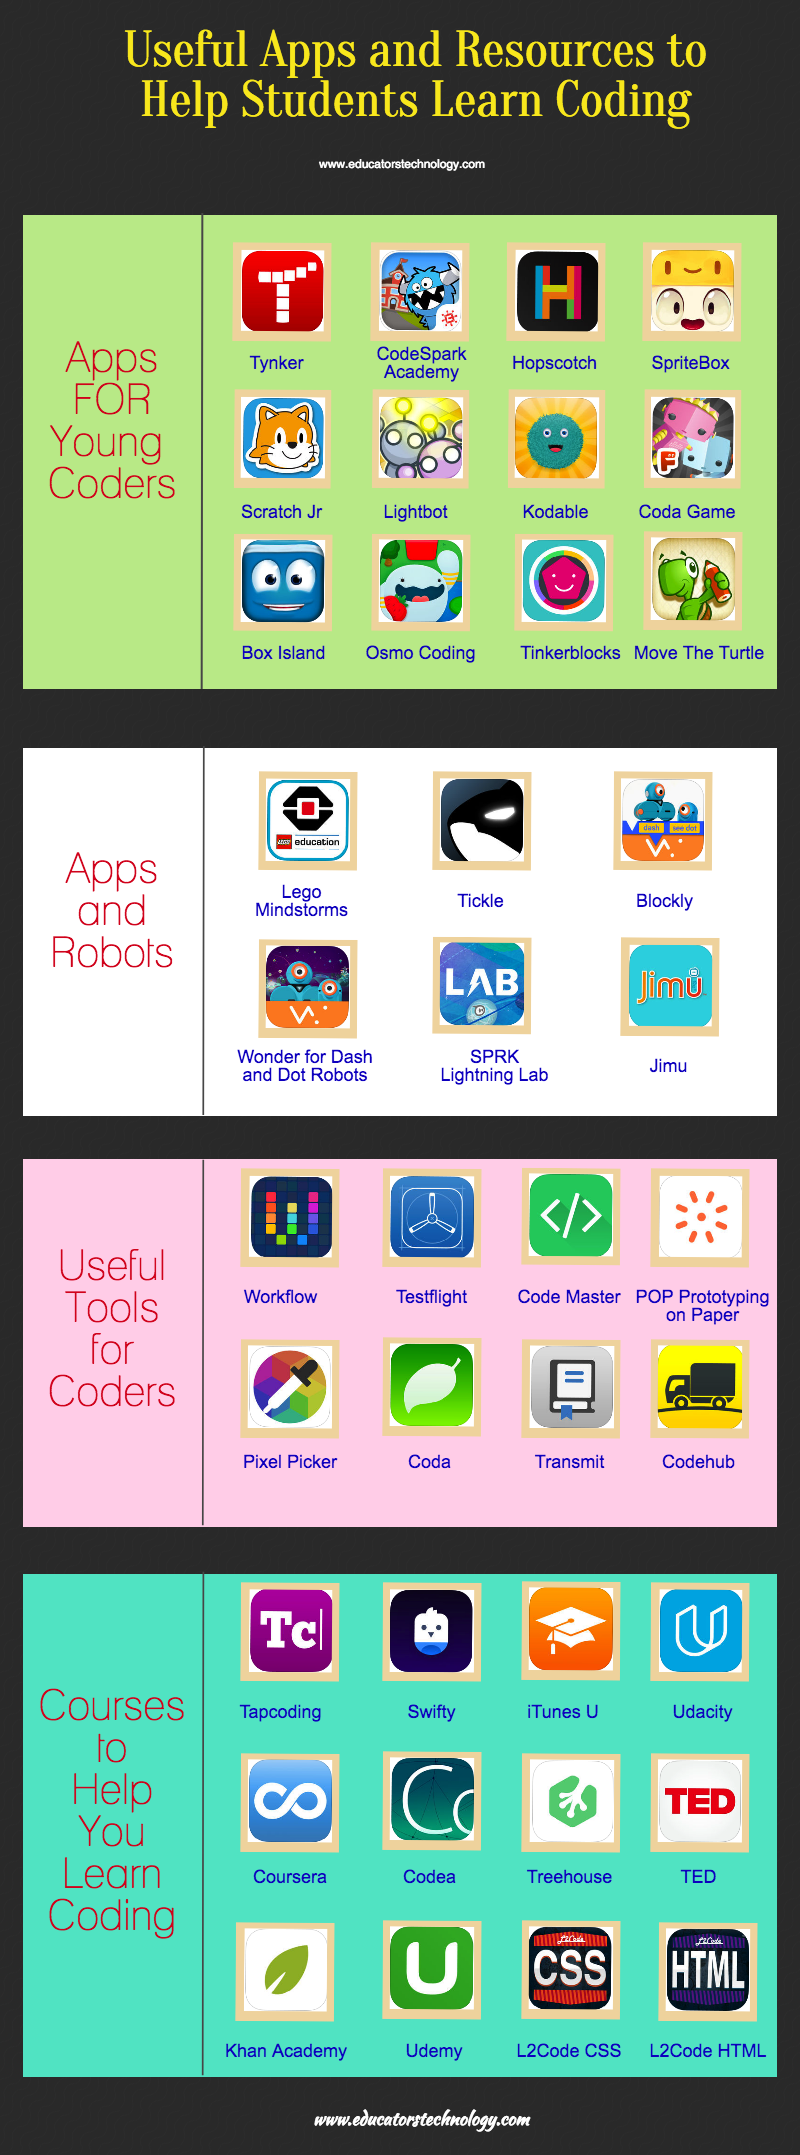 Useful Apps and Resources to Help Students Learn Coding